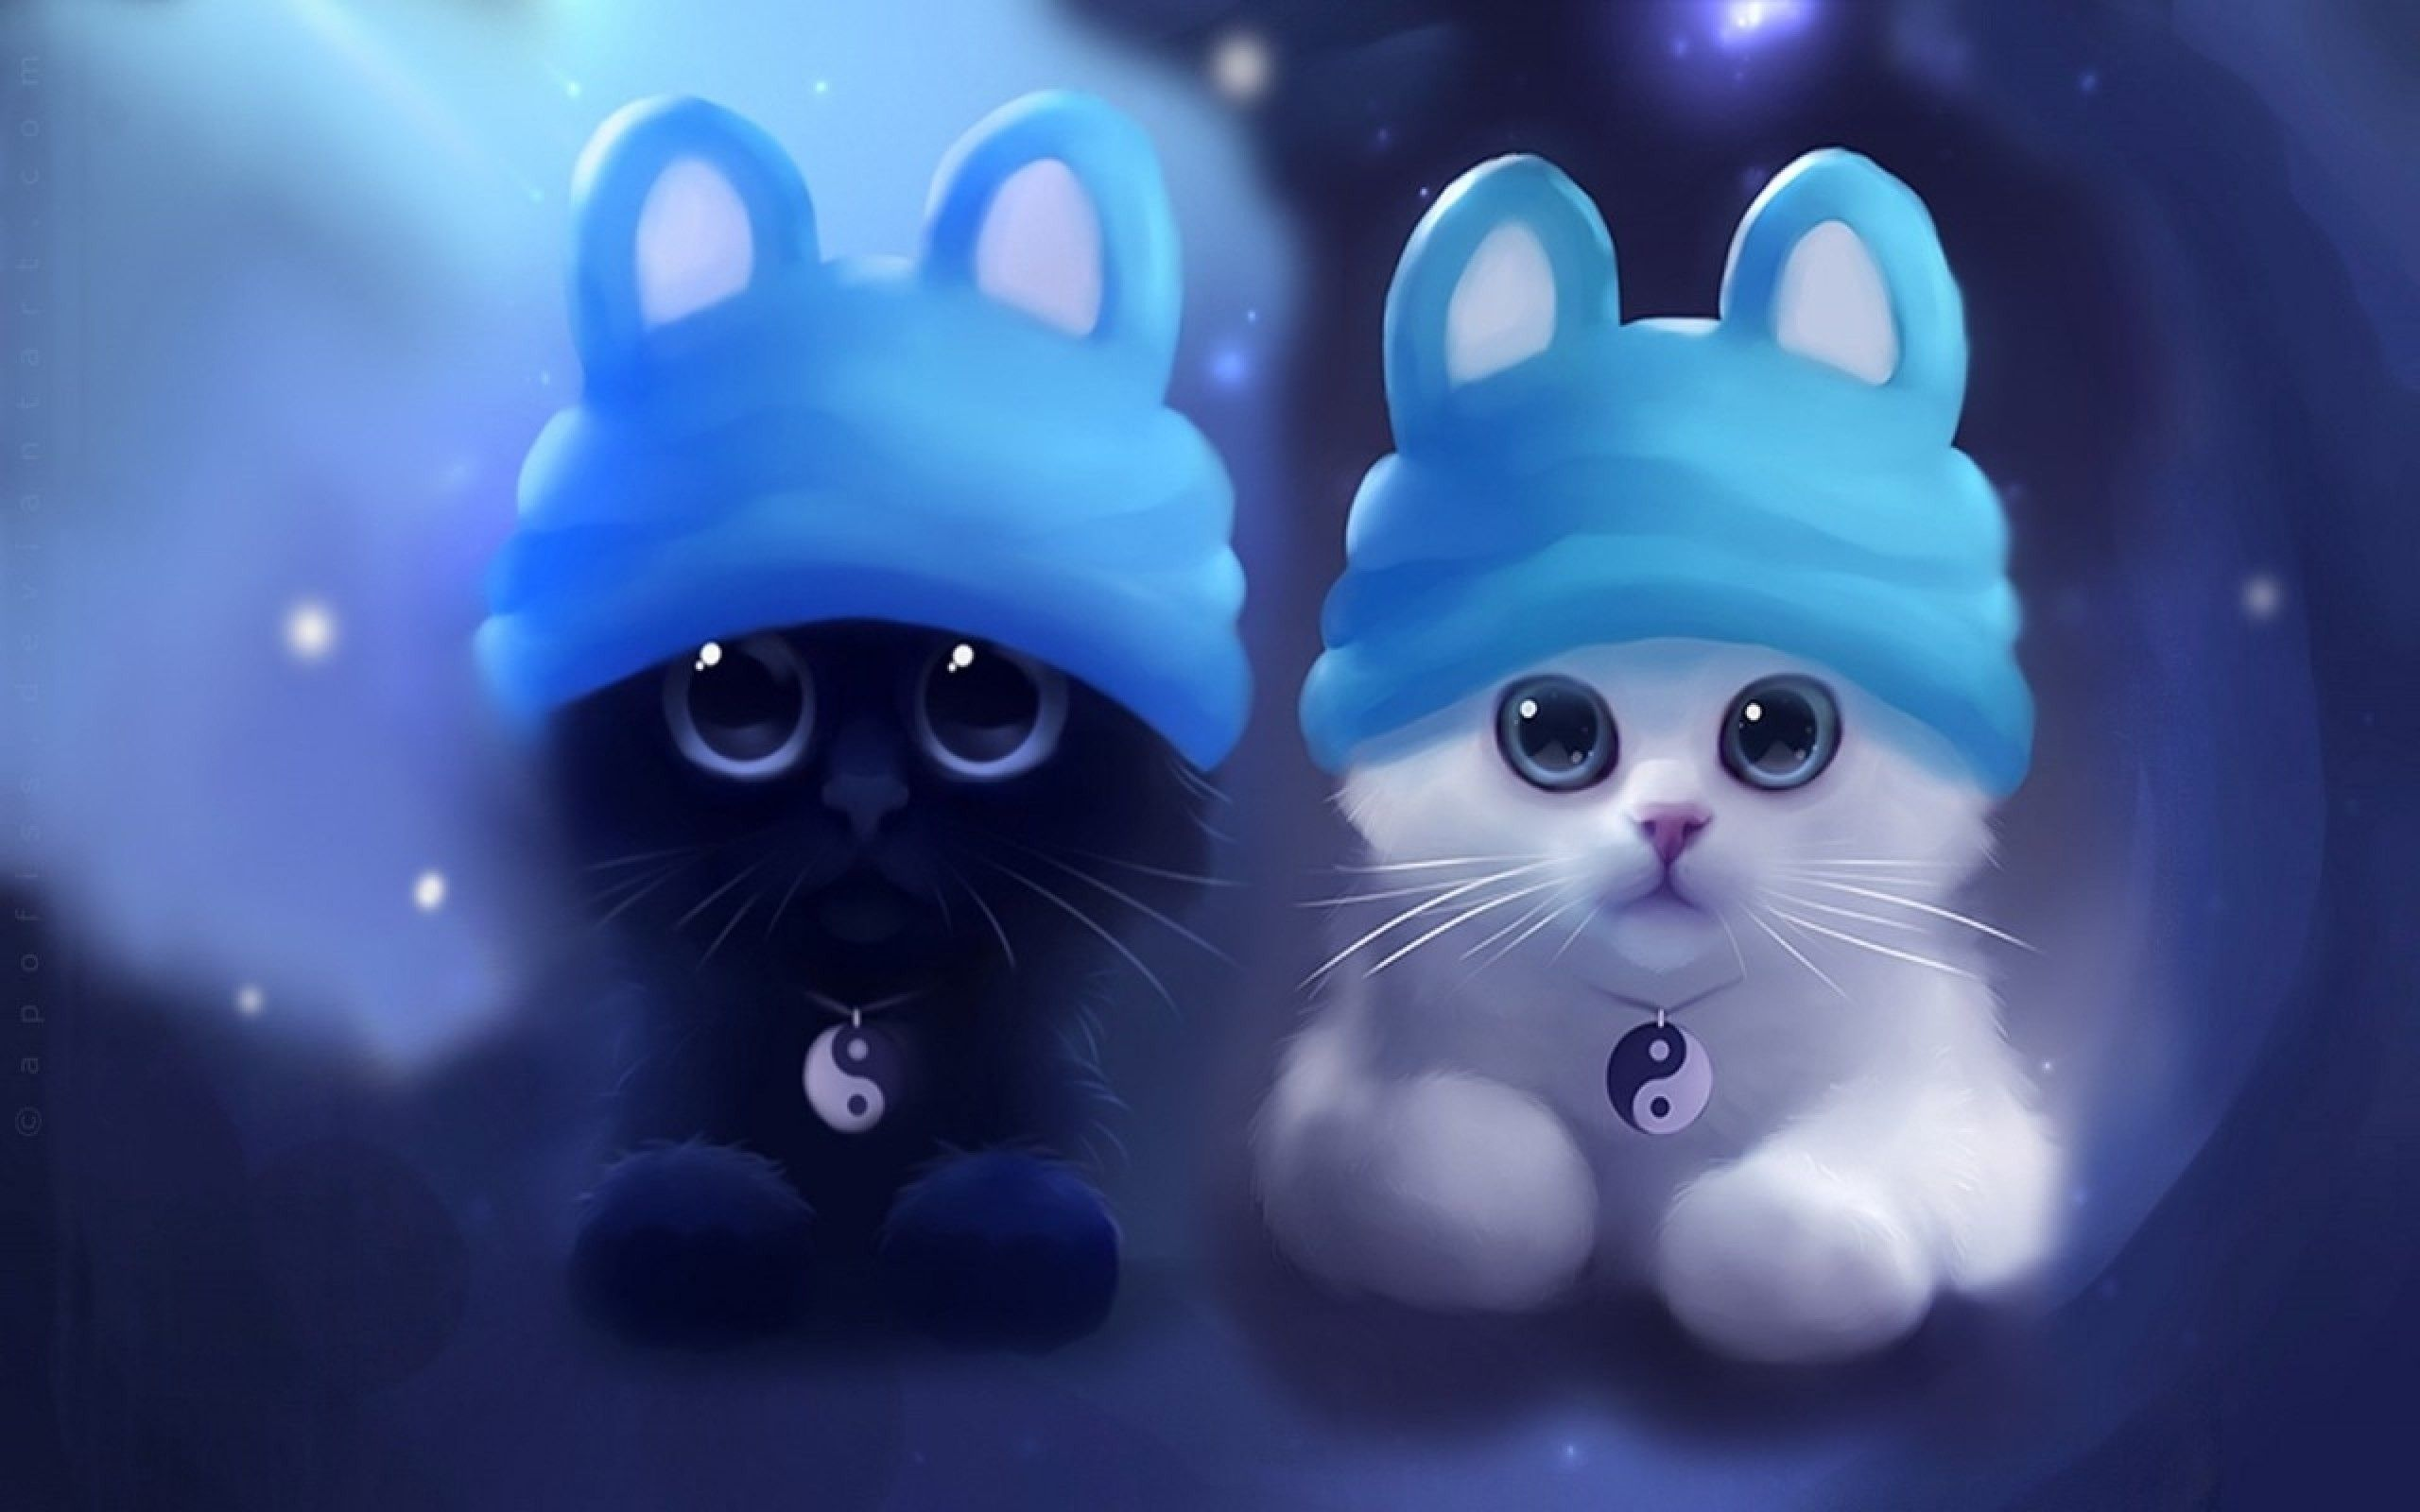 2560x1600 cute girly wallpapers for desktop background